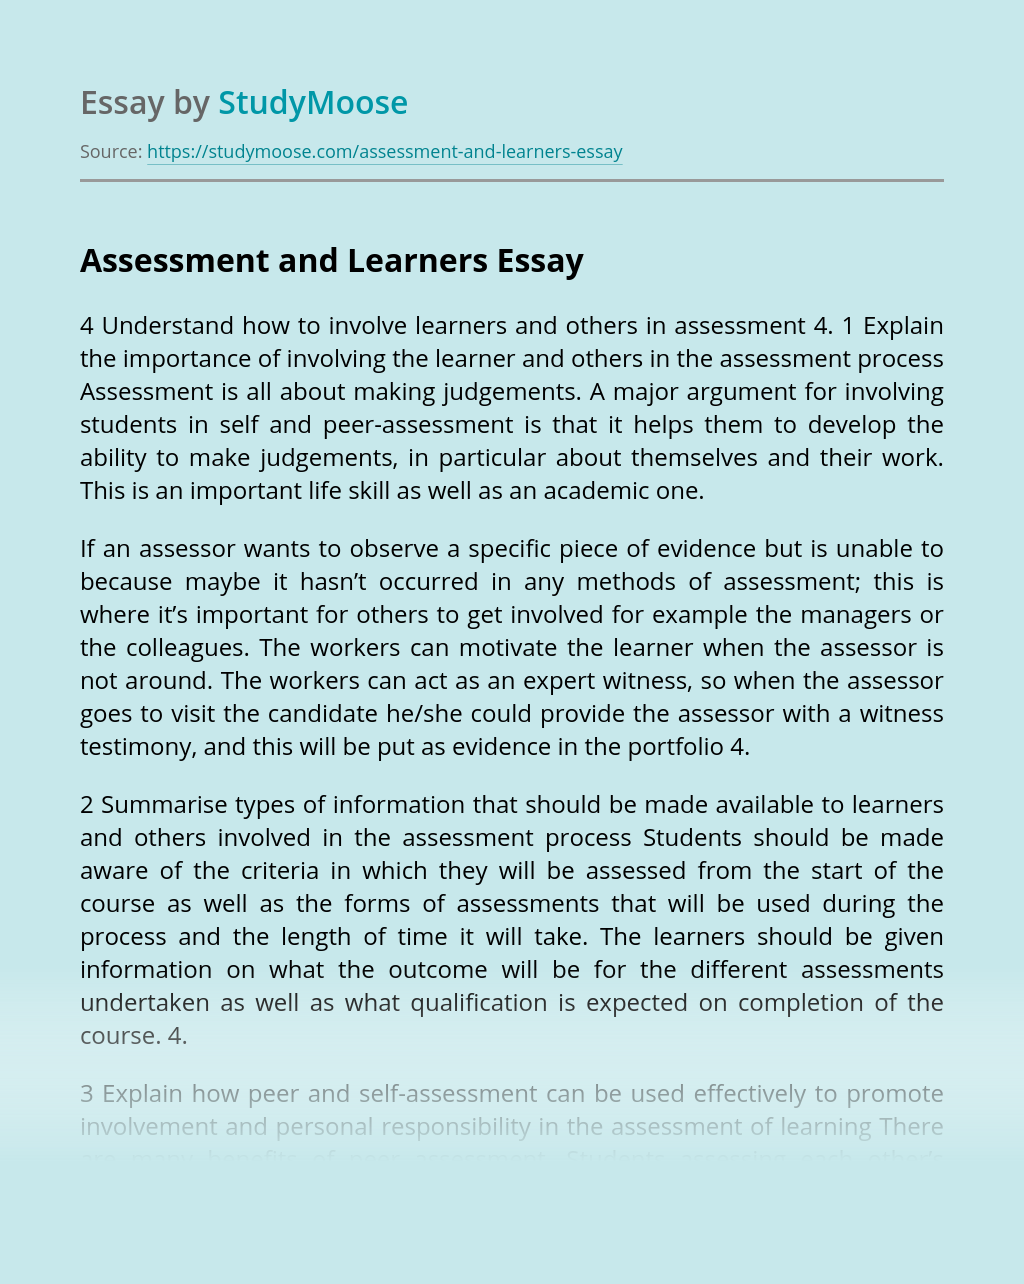 Assessment and Learners